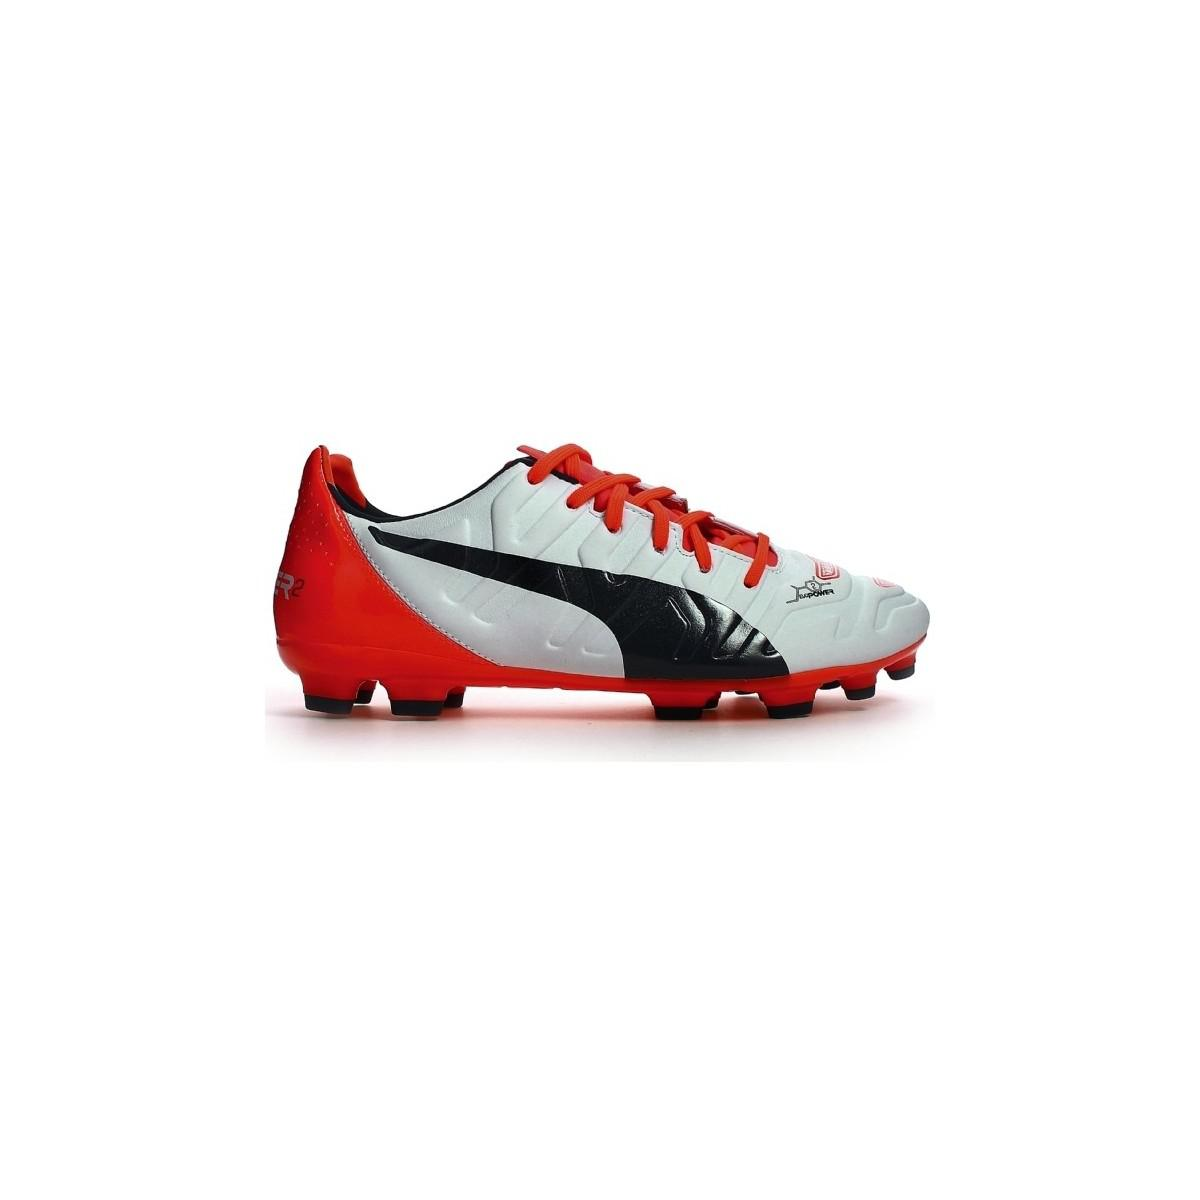 Puma Evopower 2.2 Ag Football Boots Women s Football Boots In White ... 6932ca8a2b